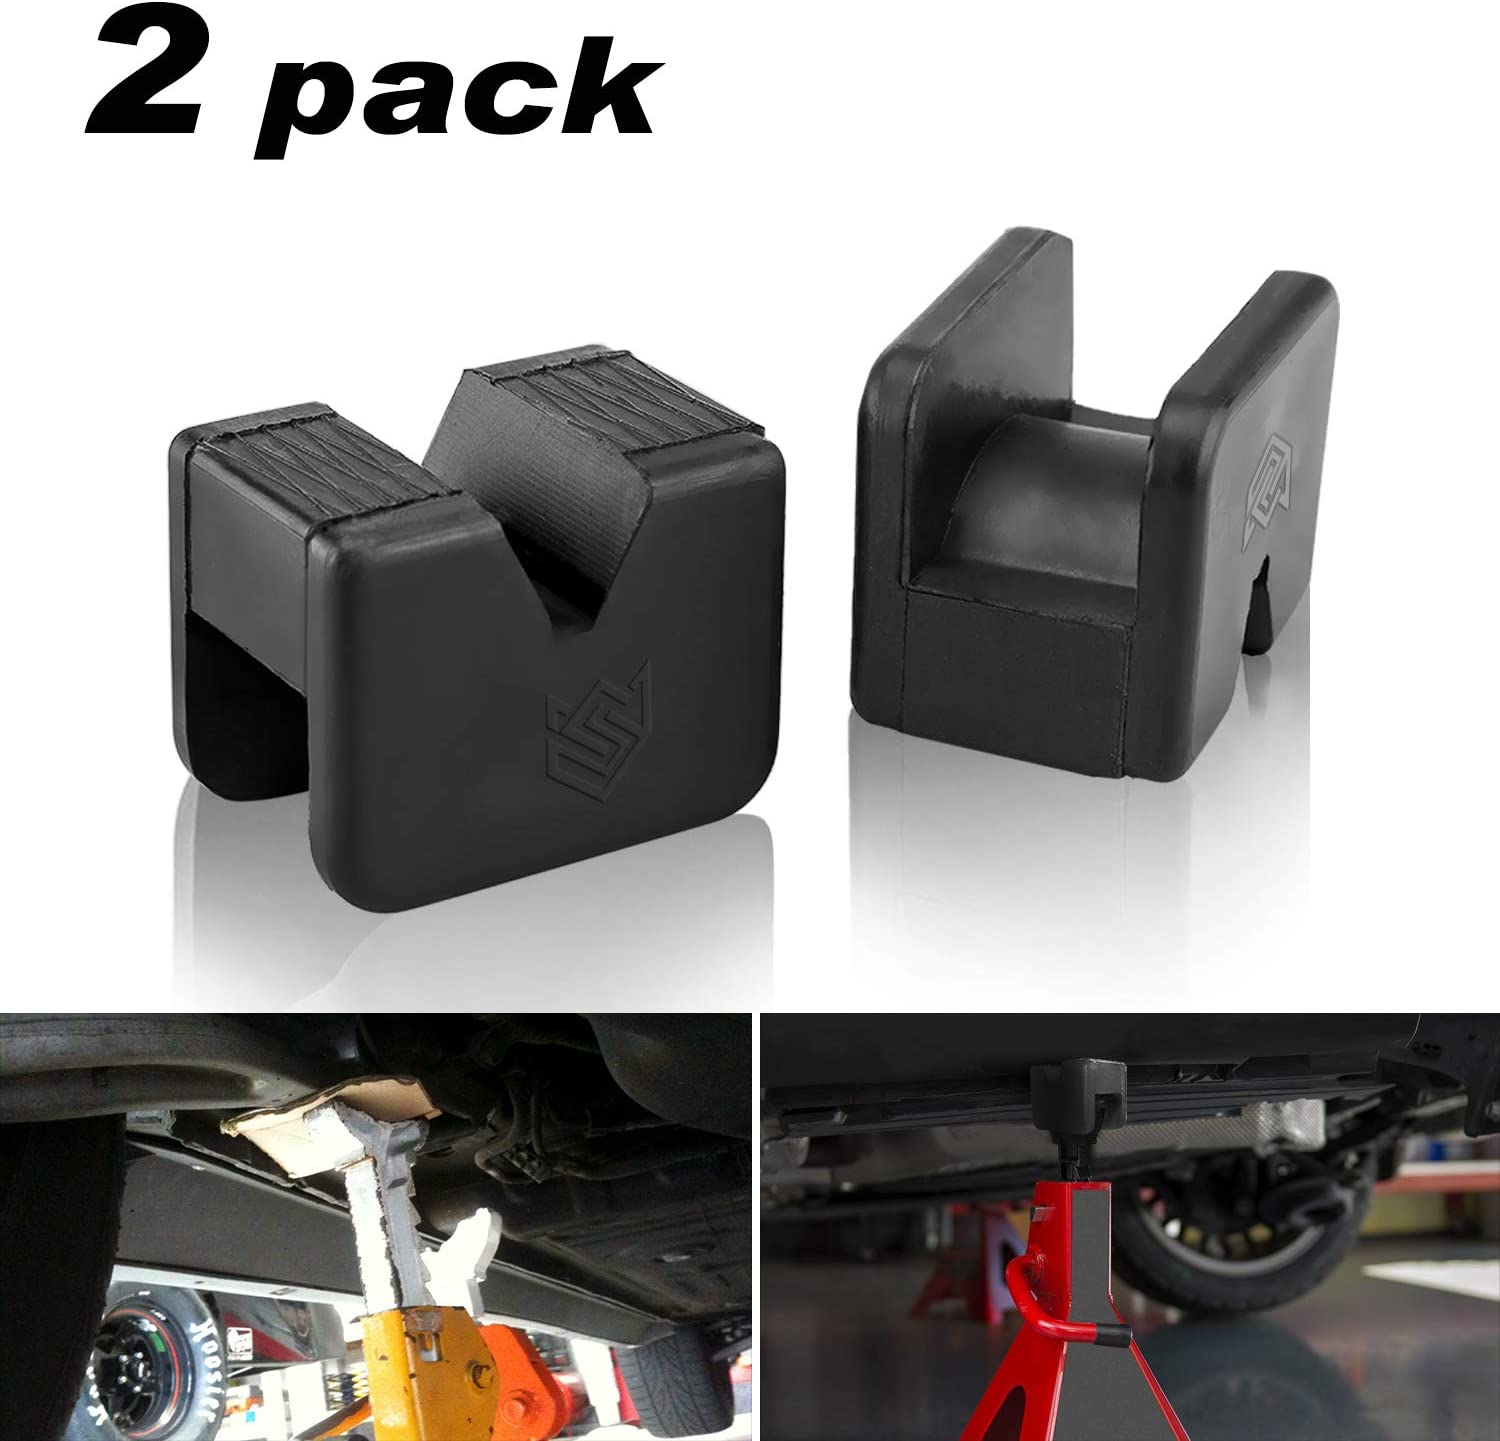 4 Pack Jack Pad Adapter,Car Rubber Jack Stand Pad 2-3 Ton Universal Slotted Frame Rail Pinch Welds Protector for Jack Stand